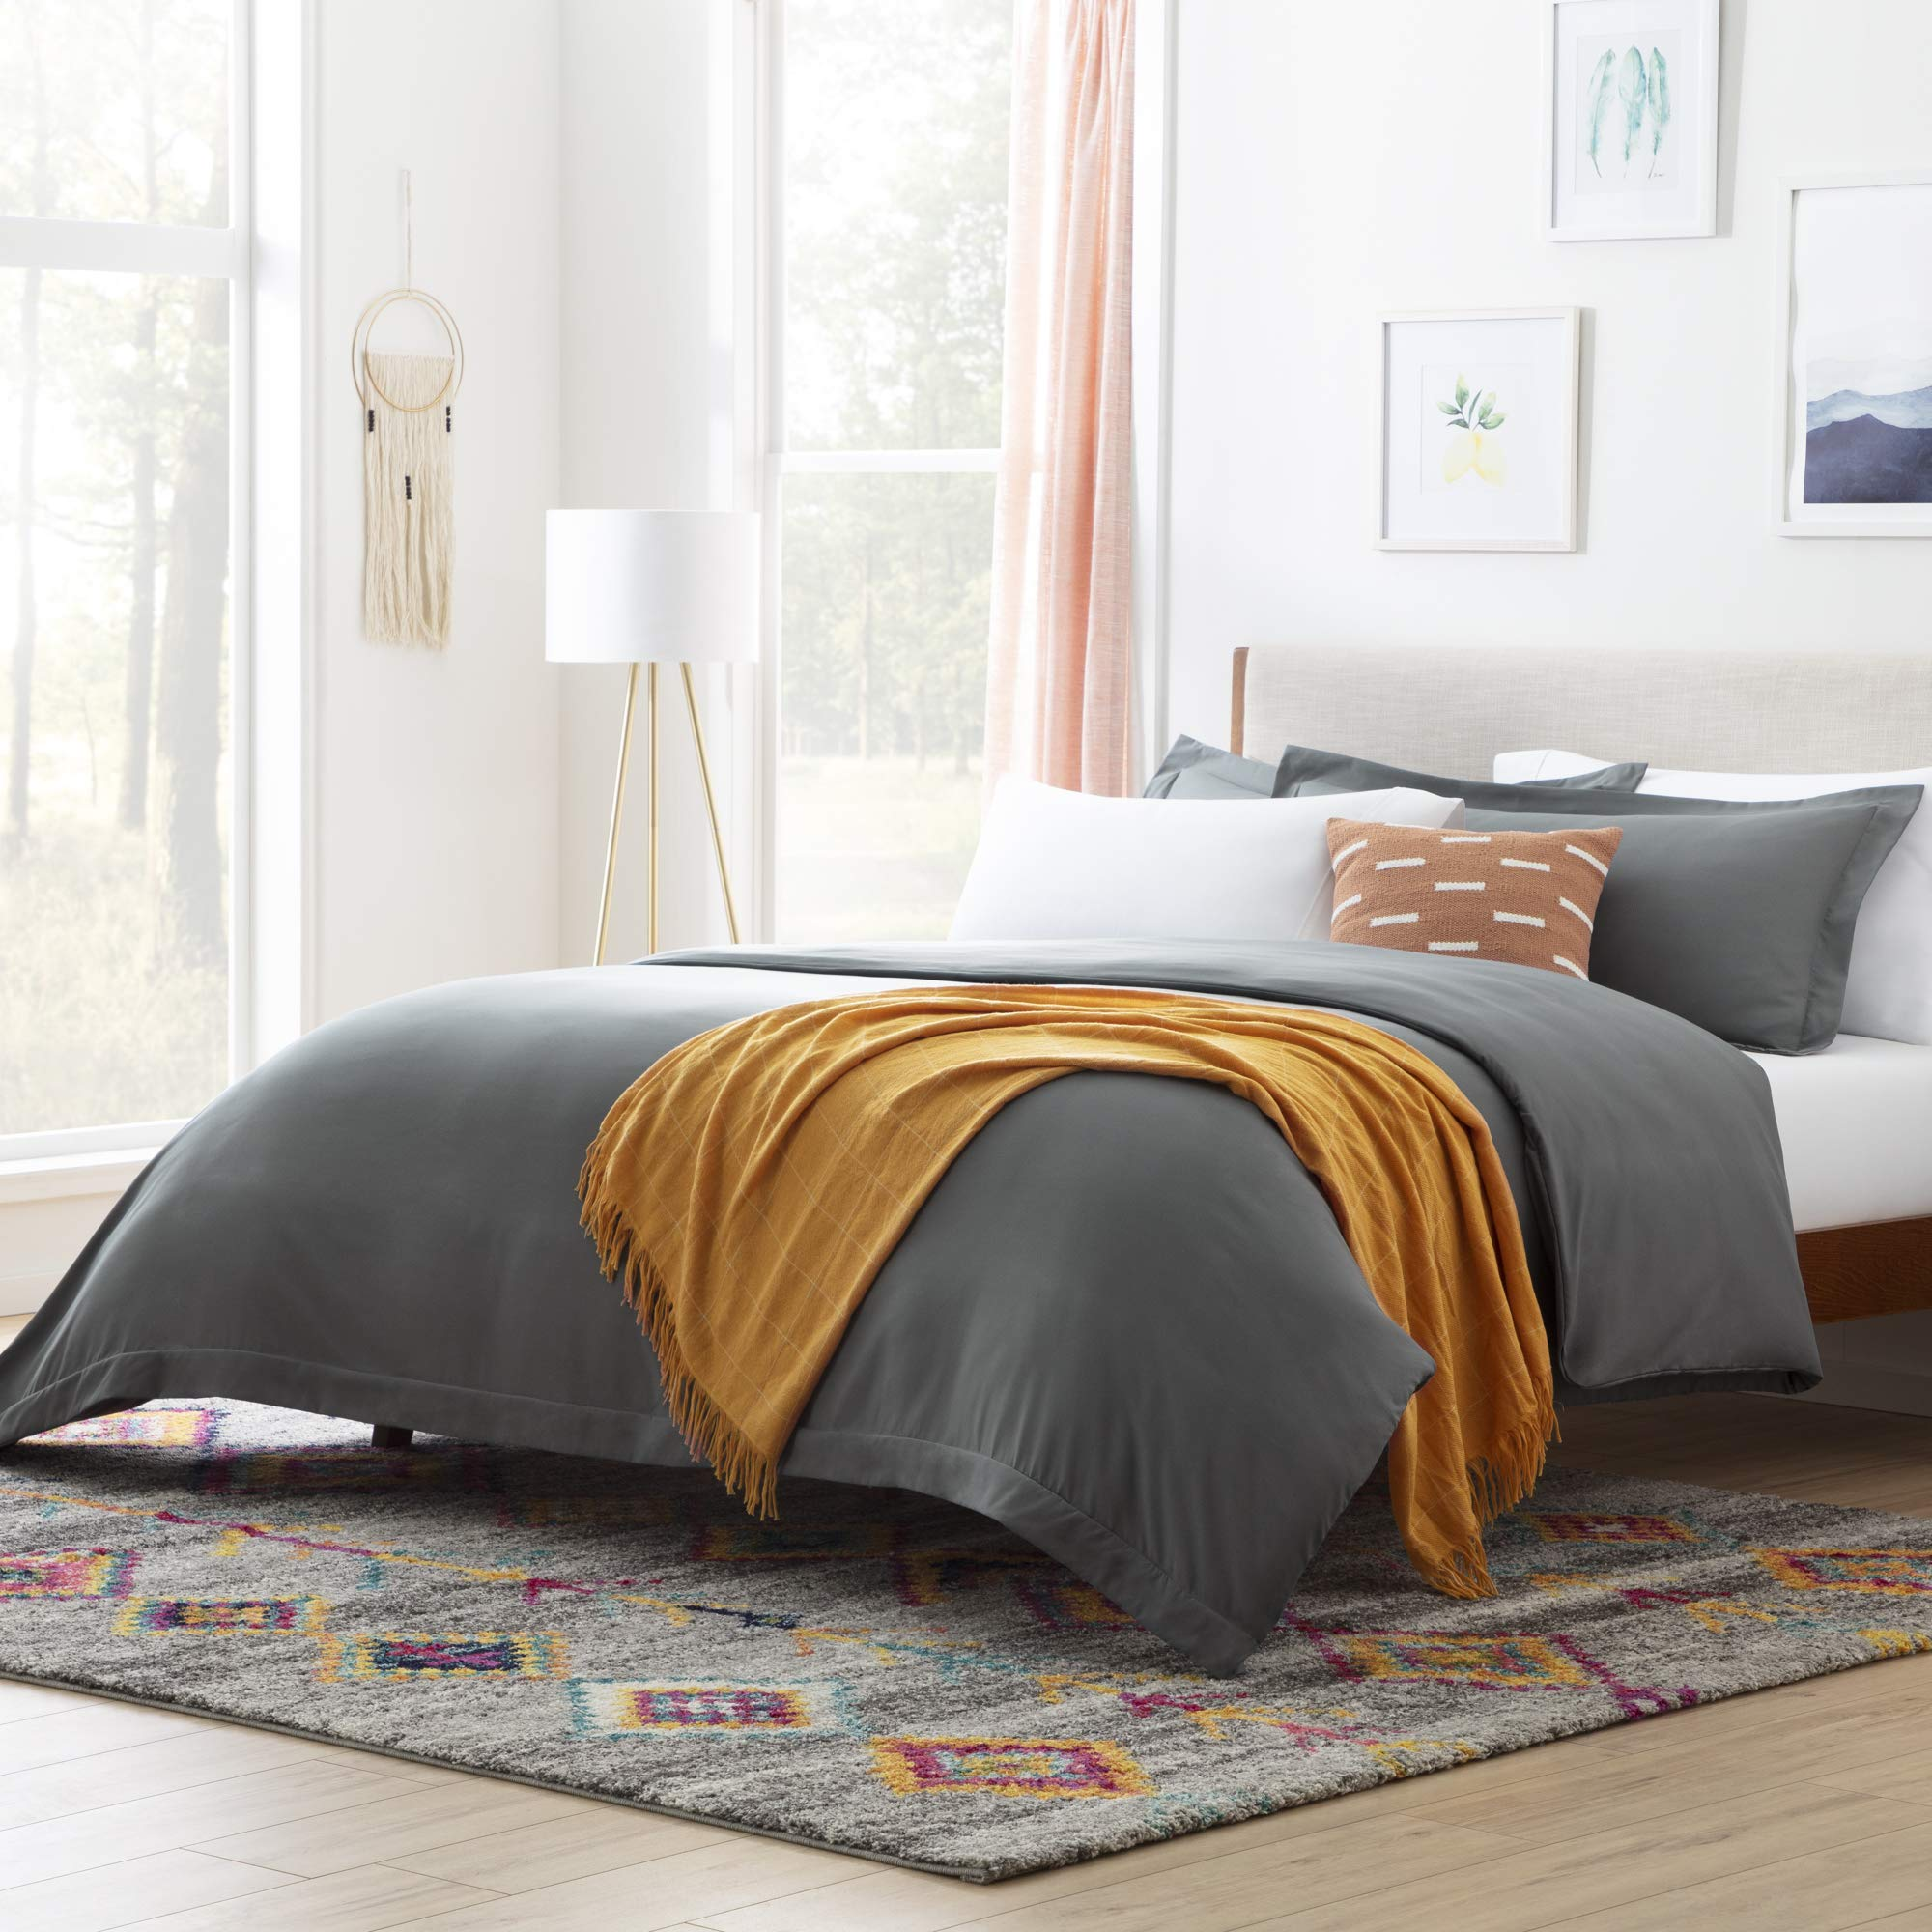 LINENSPA Microfiber Duvet Cover - Three Piece Set Includes Duvet Cover and Two Shams - Soft Brushed Microfiber - Hypoallergenic, Charcoal, Cal King